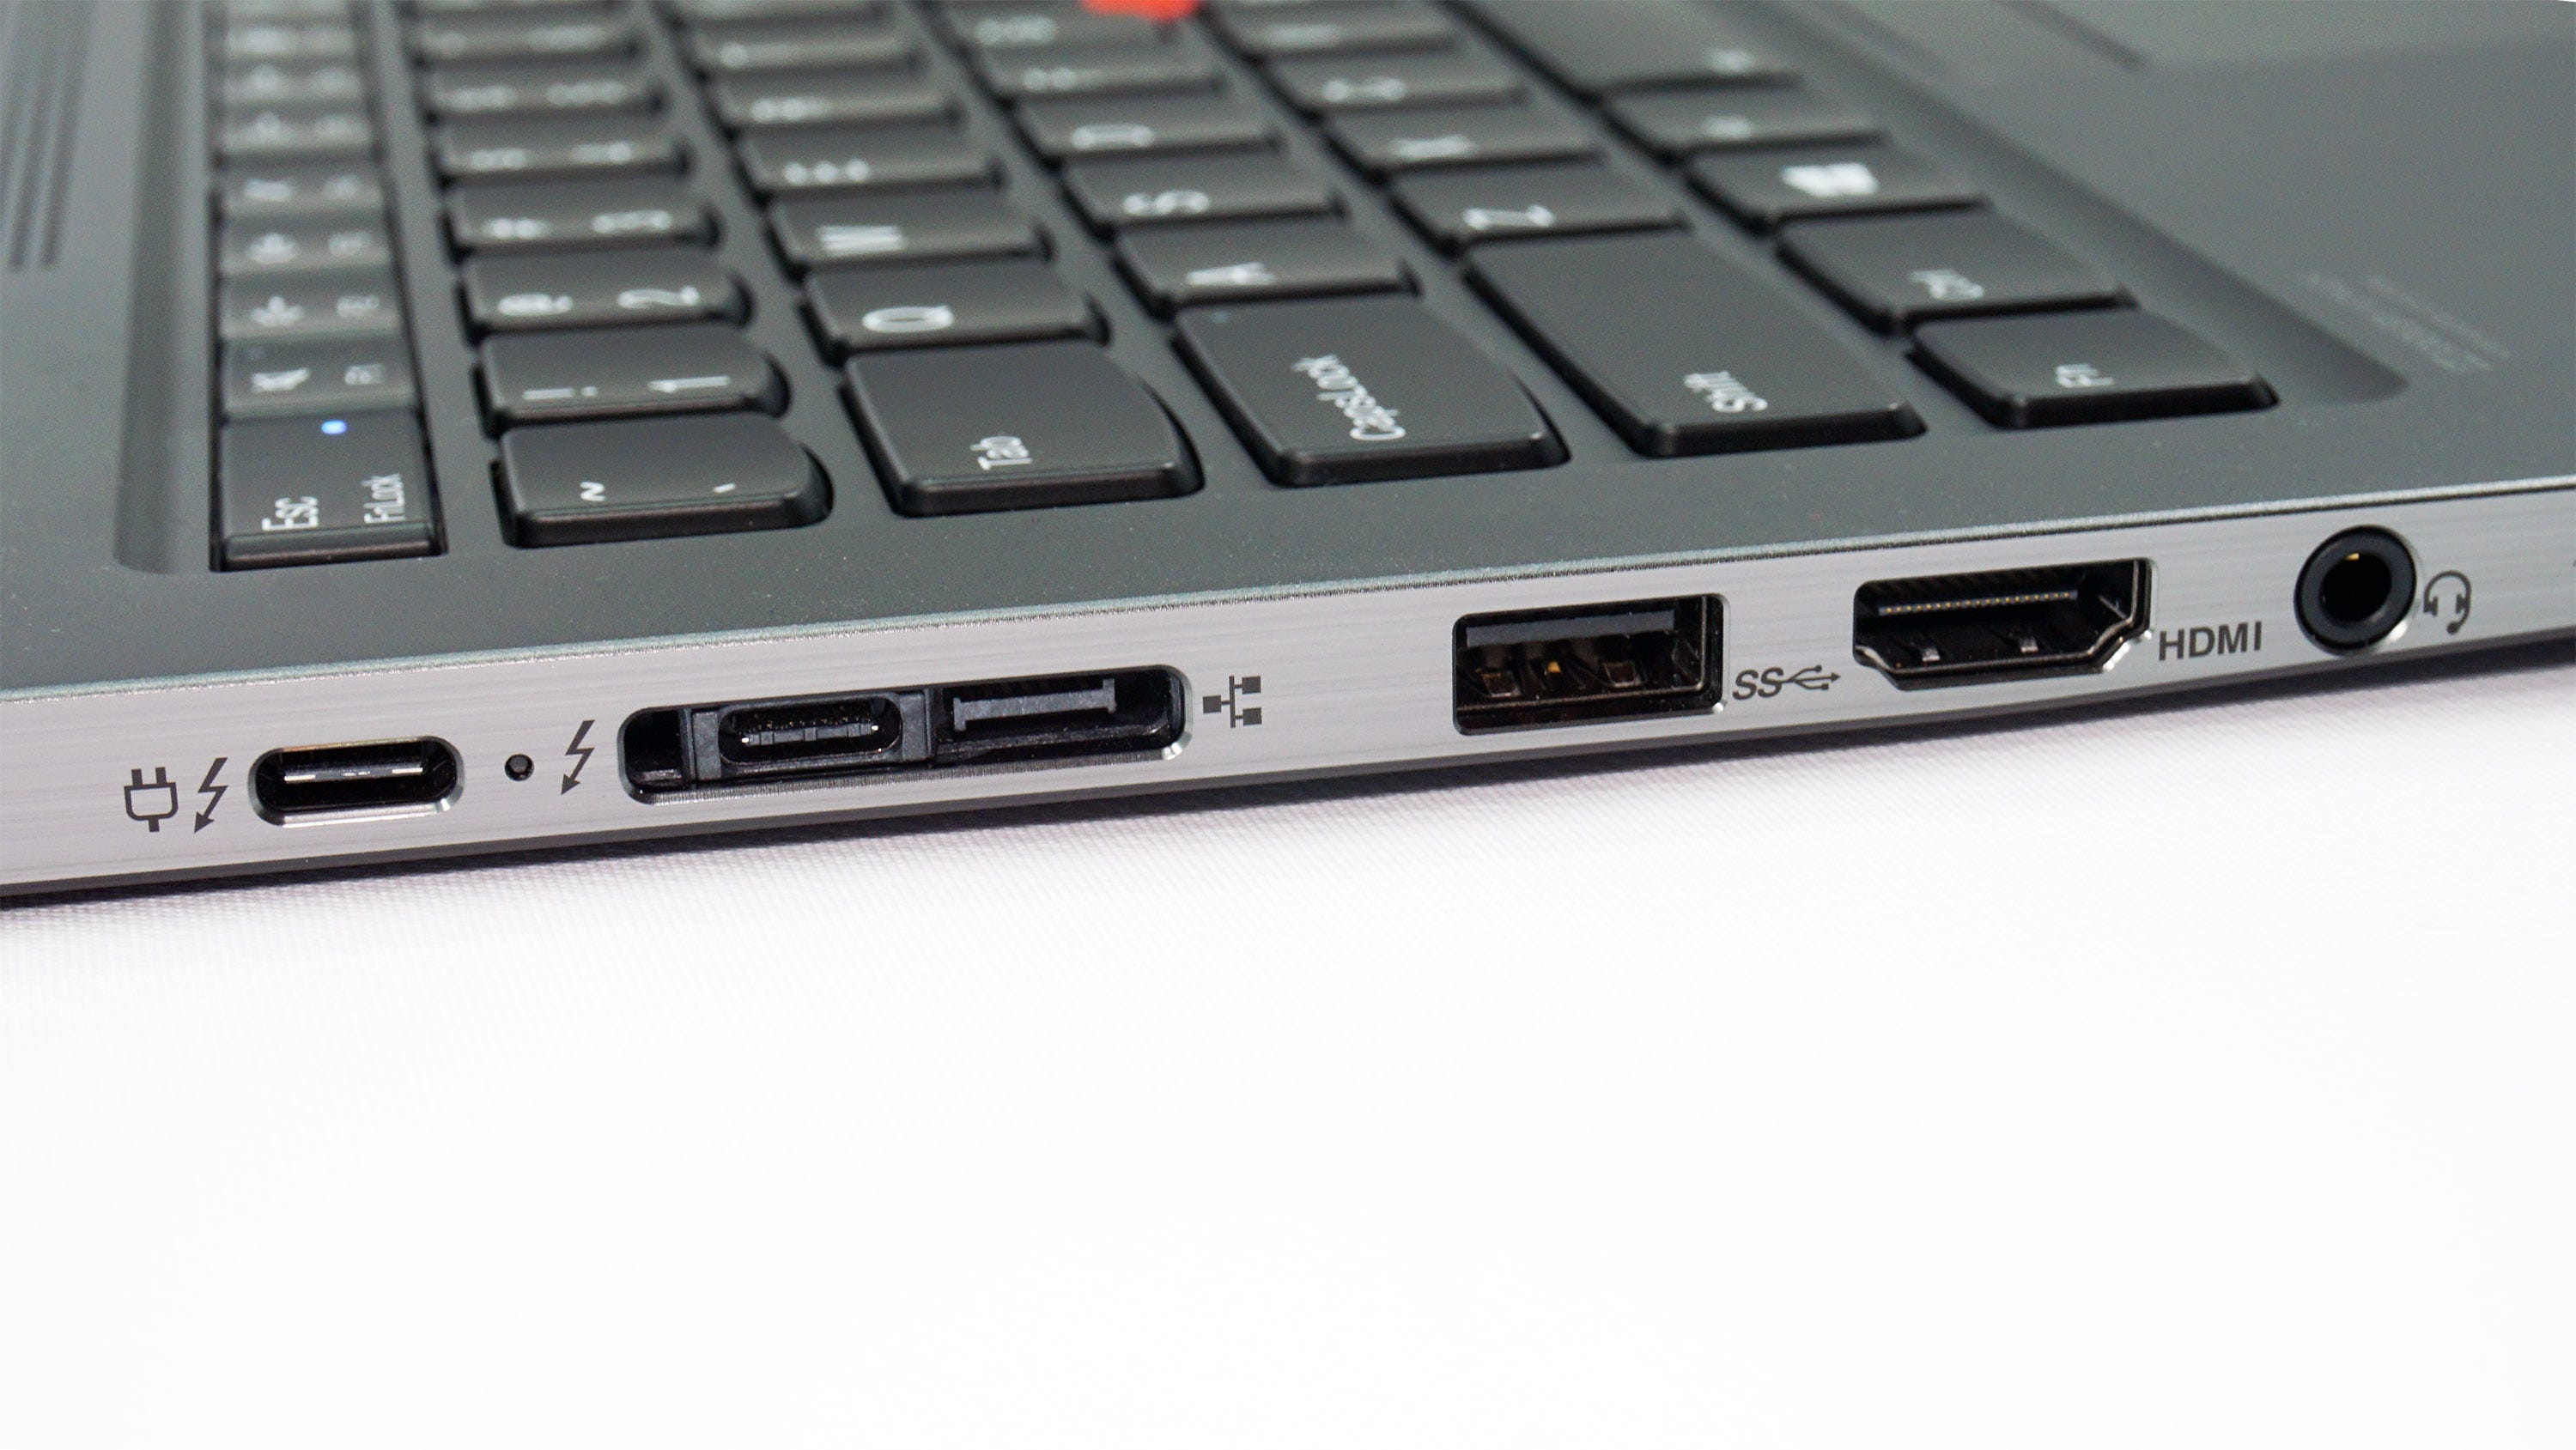 The ports on the left side of the X1 Yoga.